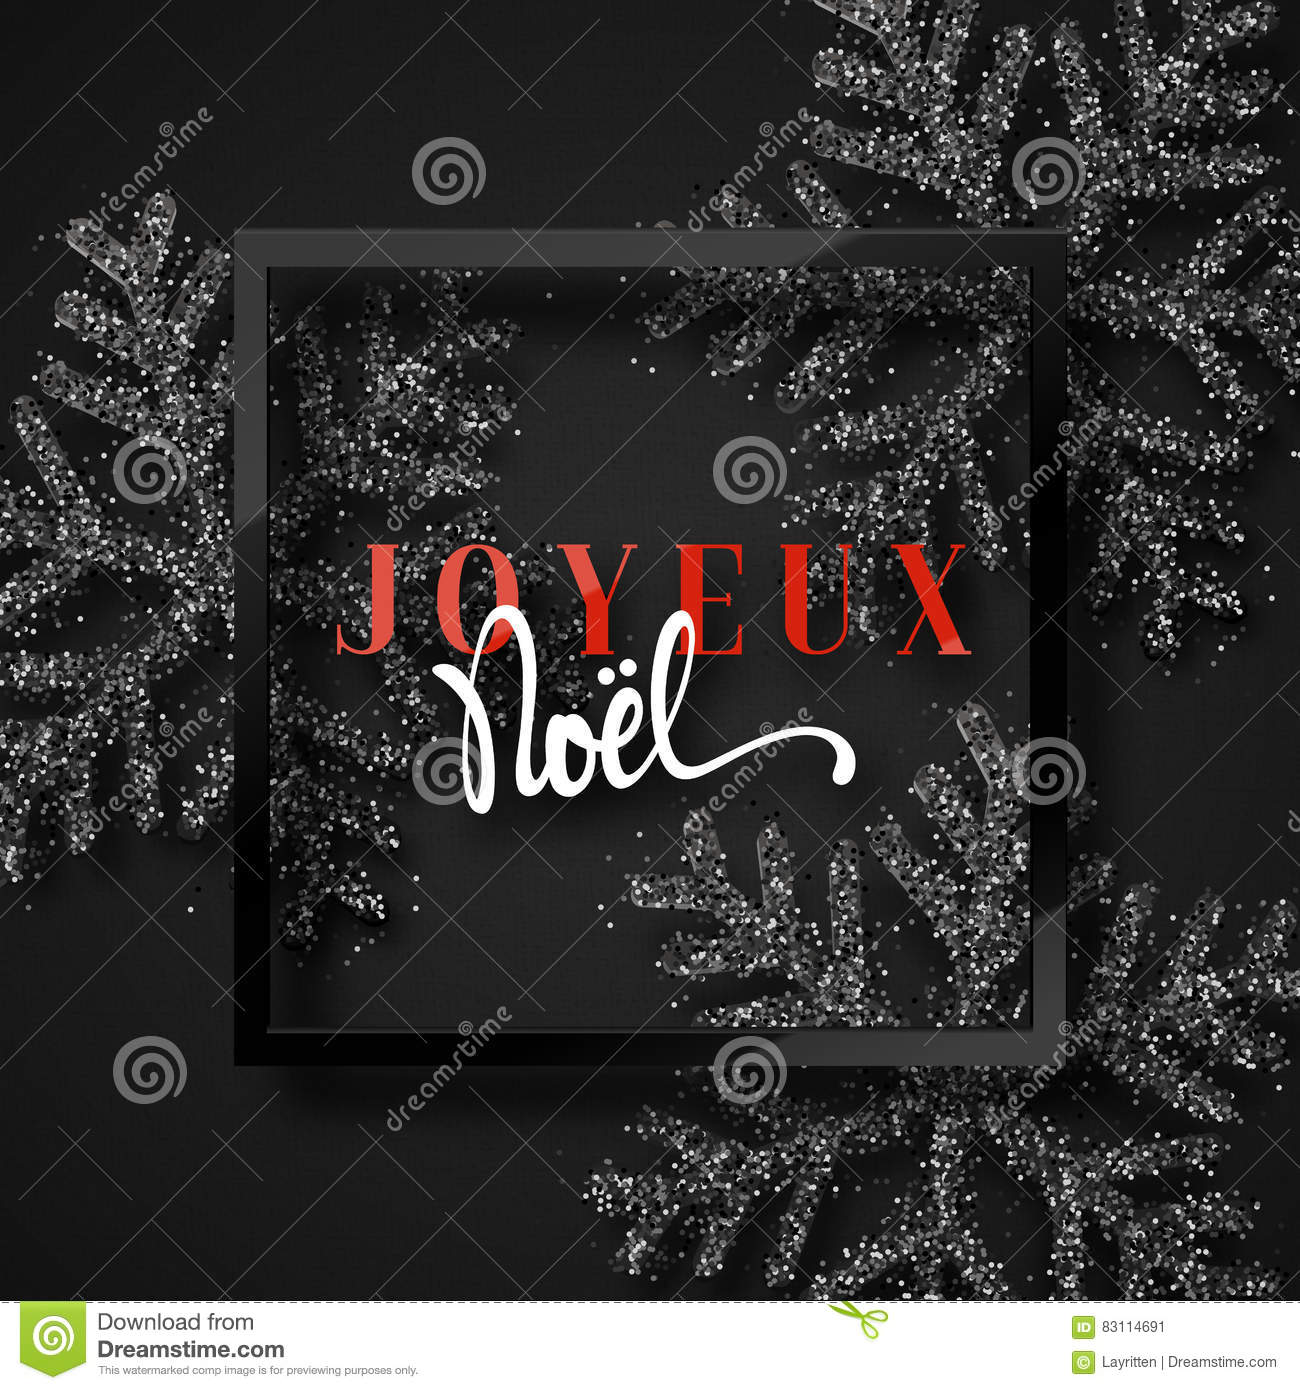 download merry christmas french inscription joyeux noel stock vector illustration of black - Merry Christmas French